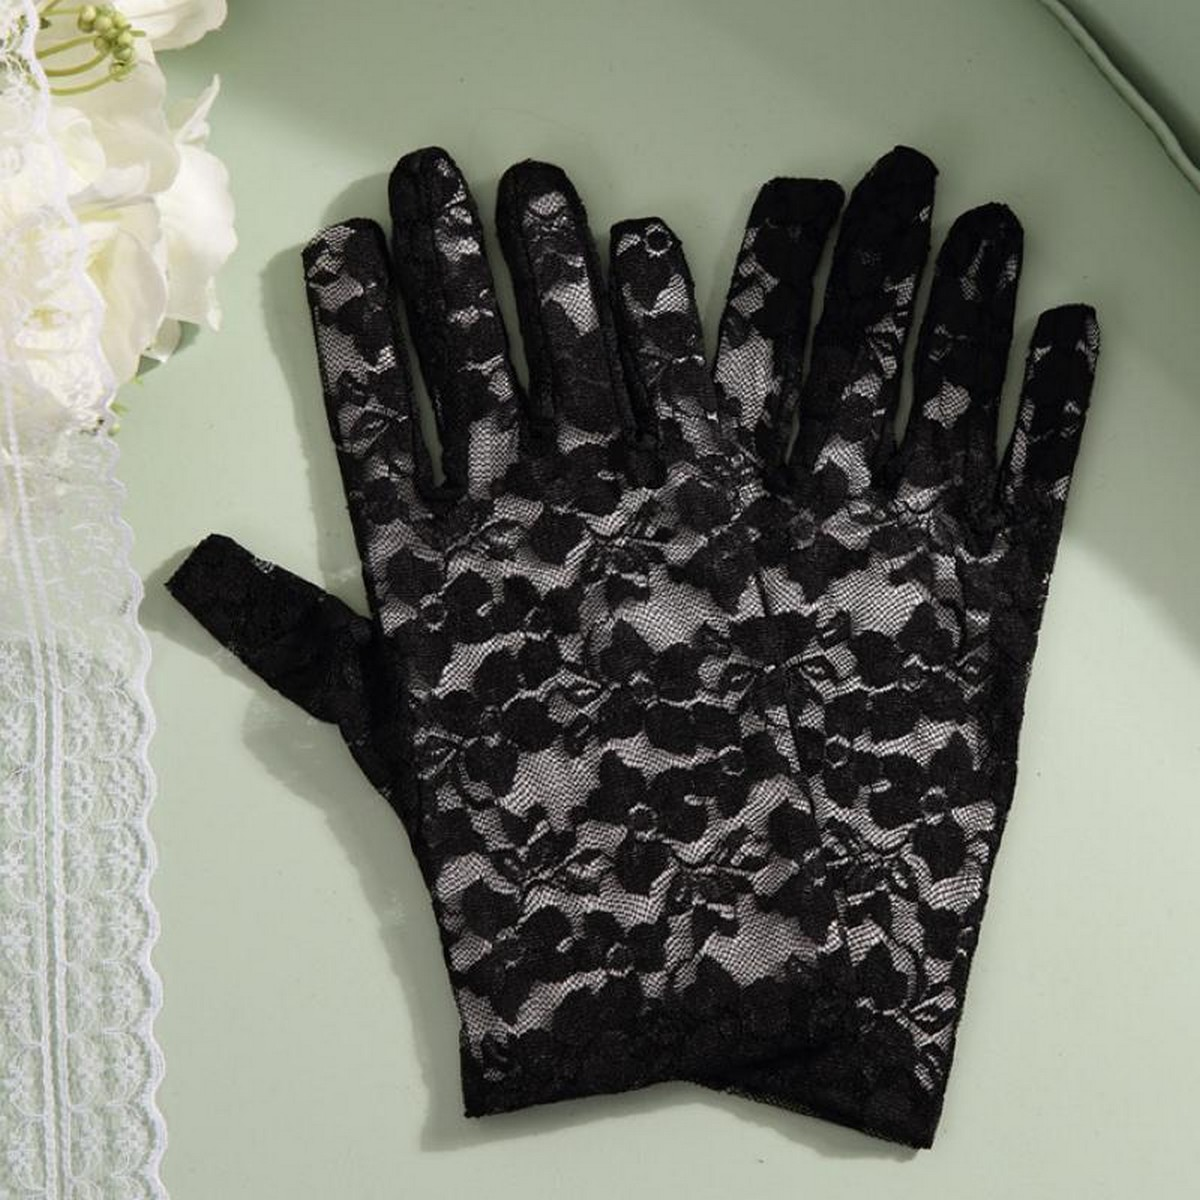 Pack of 2 Floral Lace Gloves Summers Gloves for Women